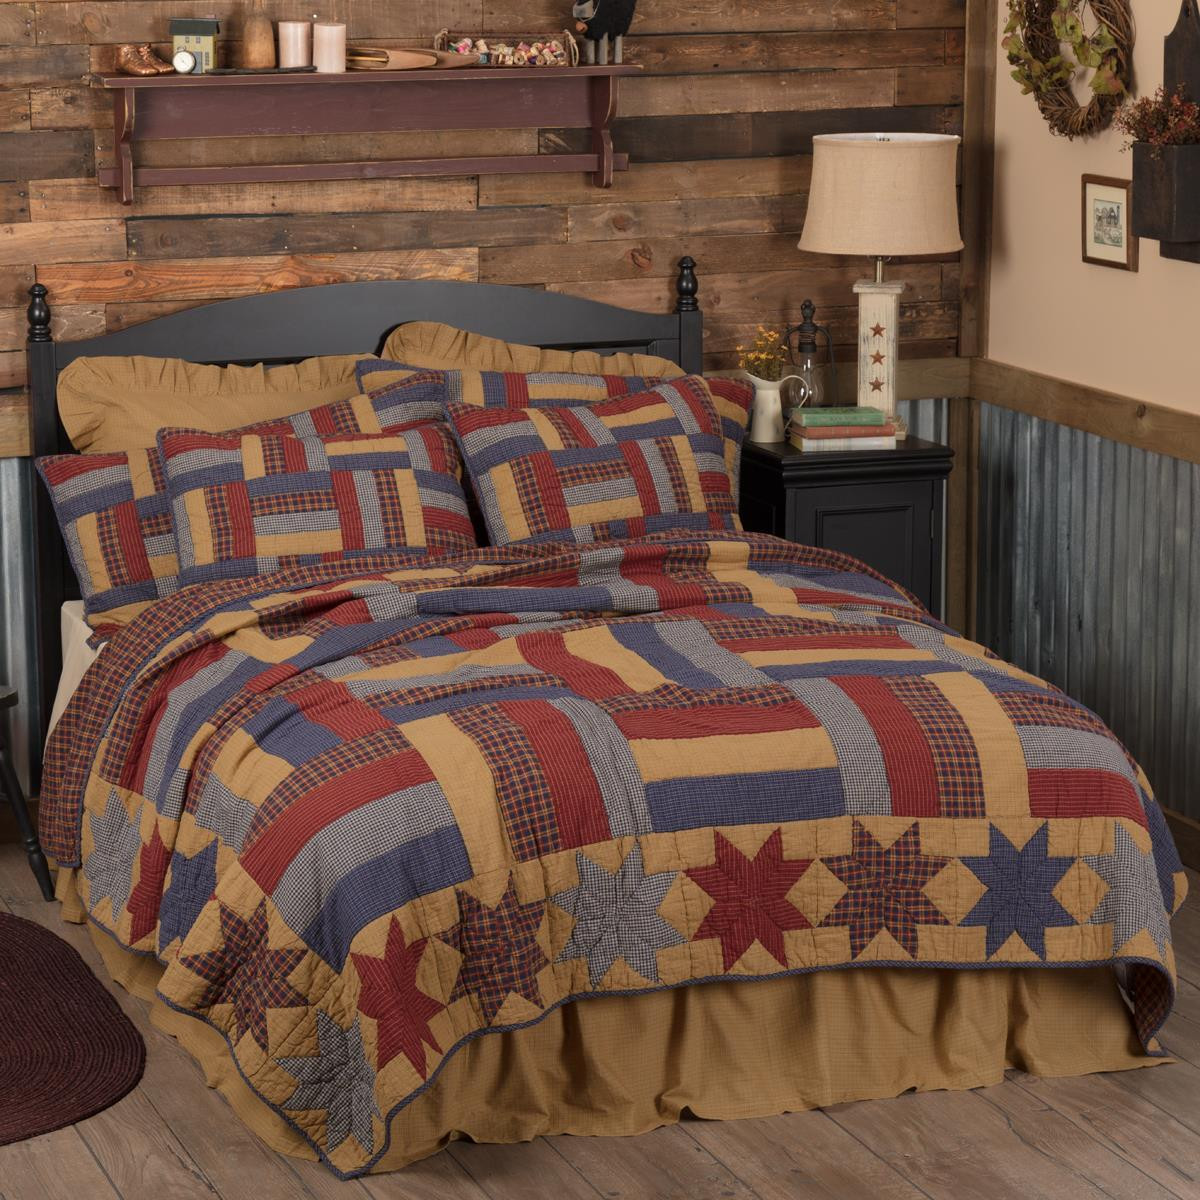 National Quilt Museum Kindred Stars and Bars Quilt Collection -